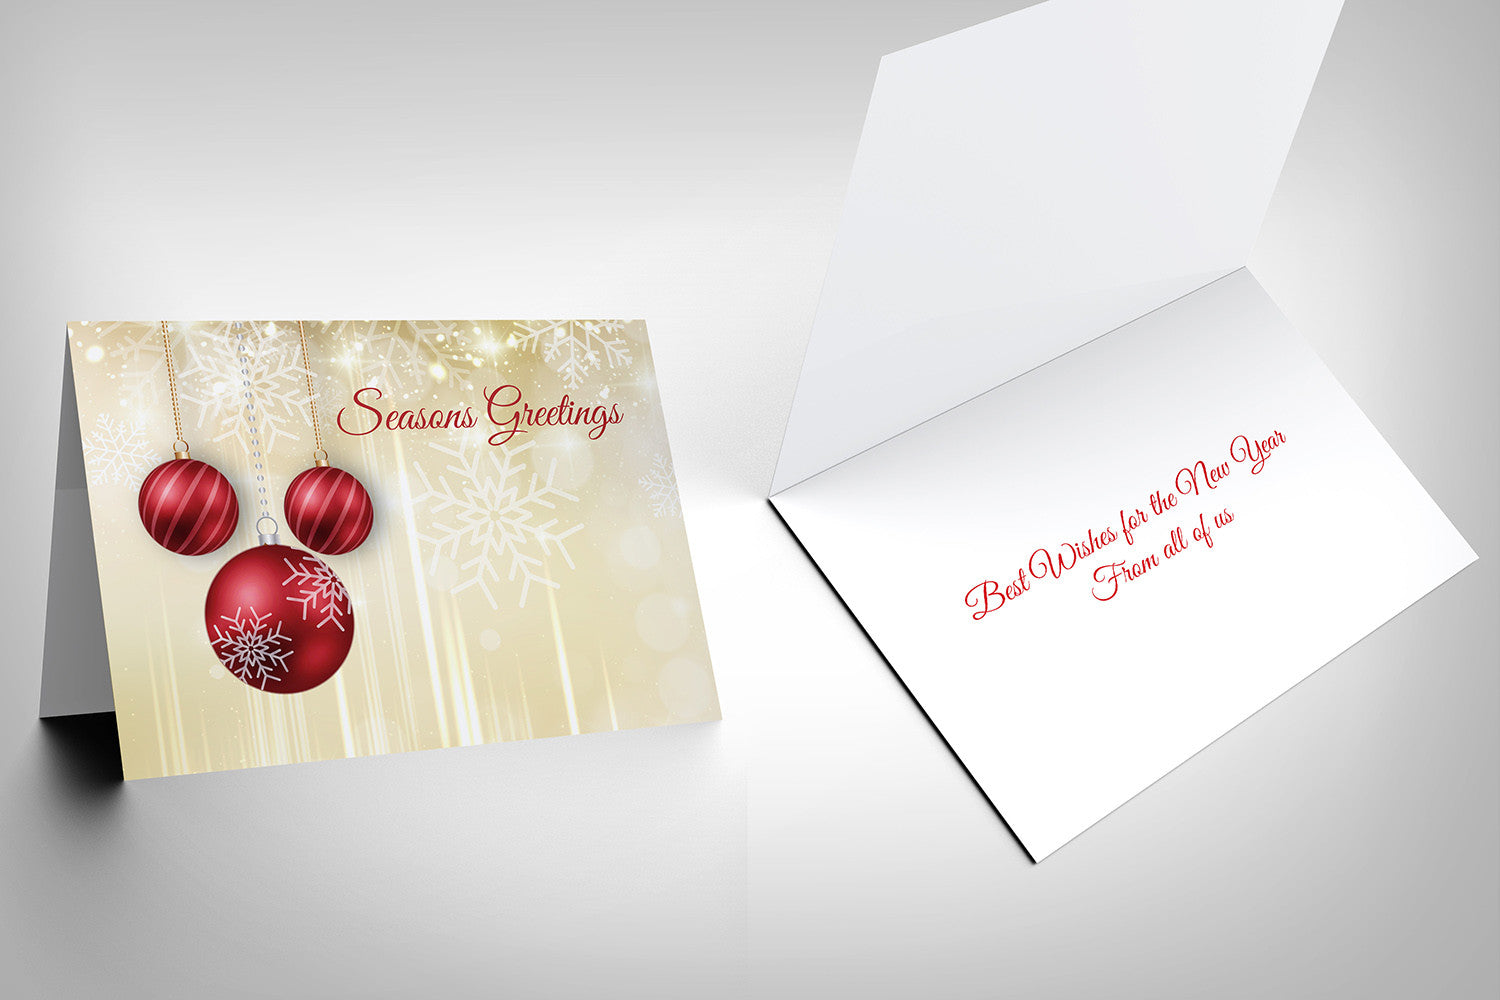 Seasons Greeting Card Design O